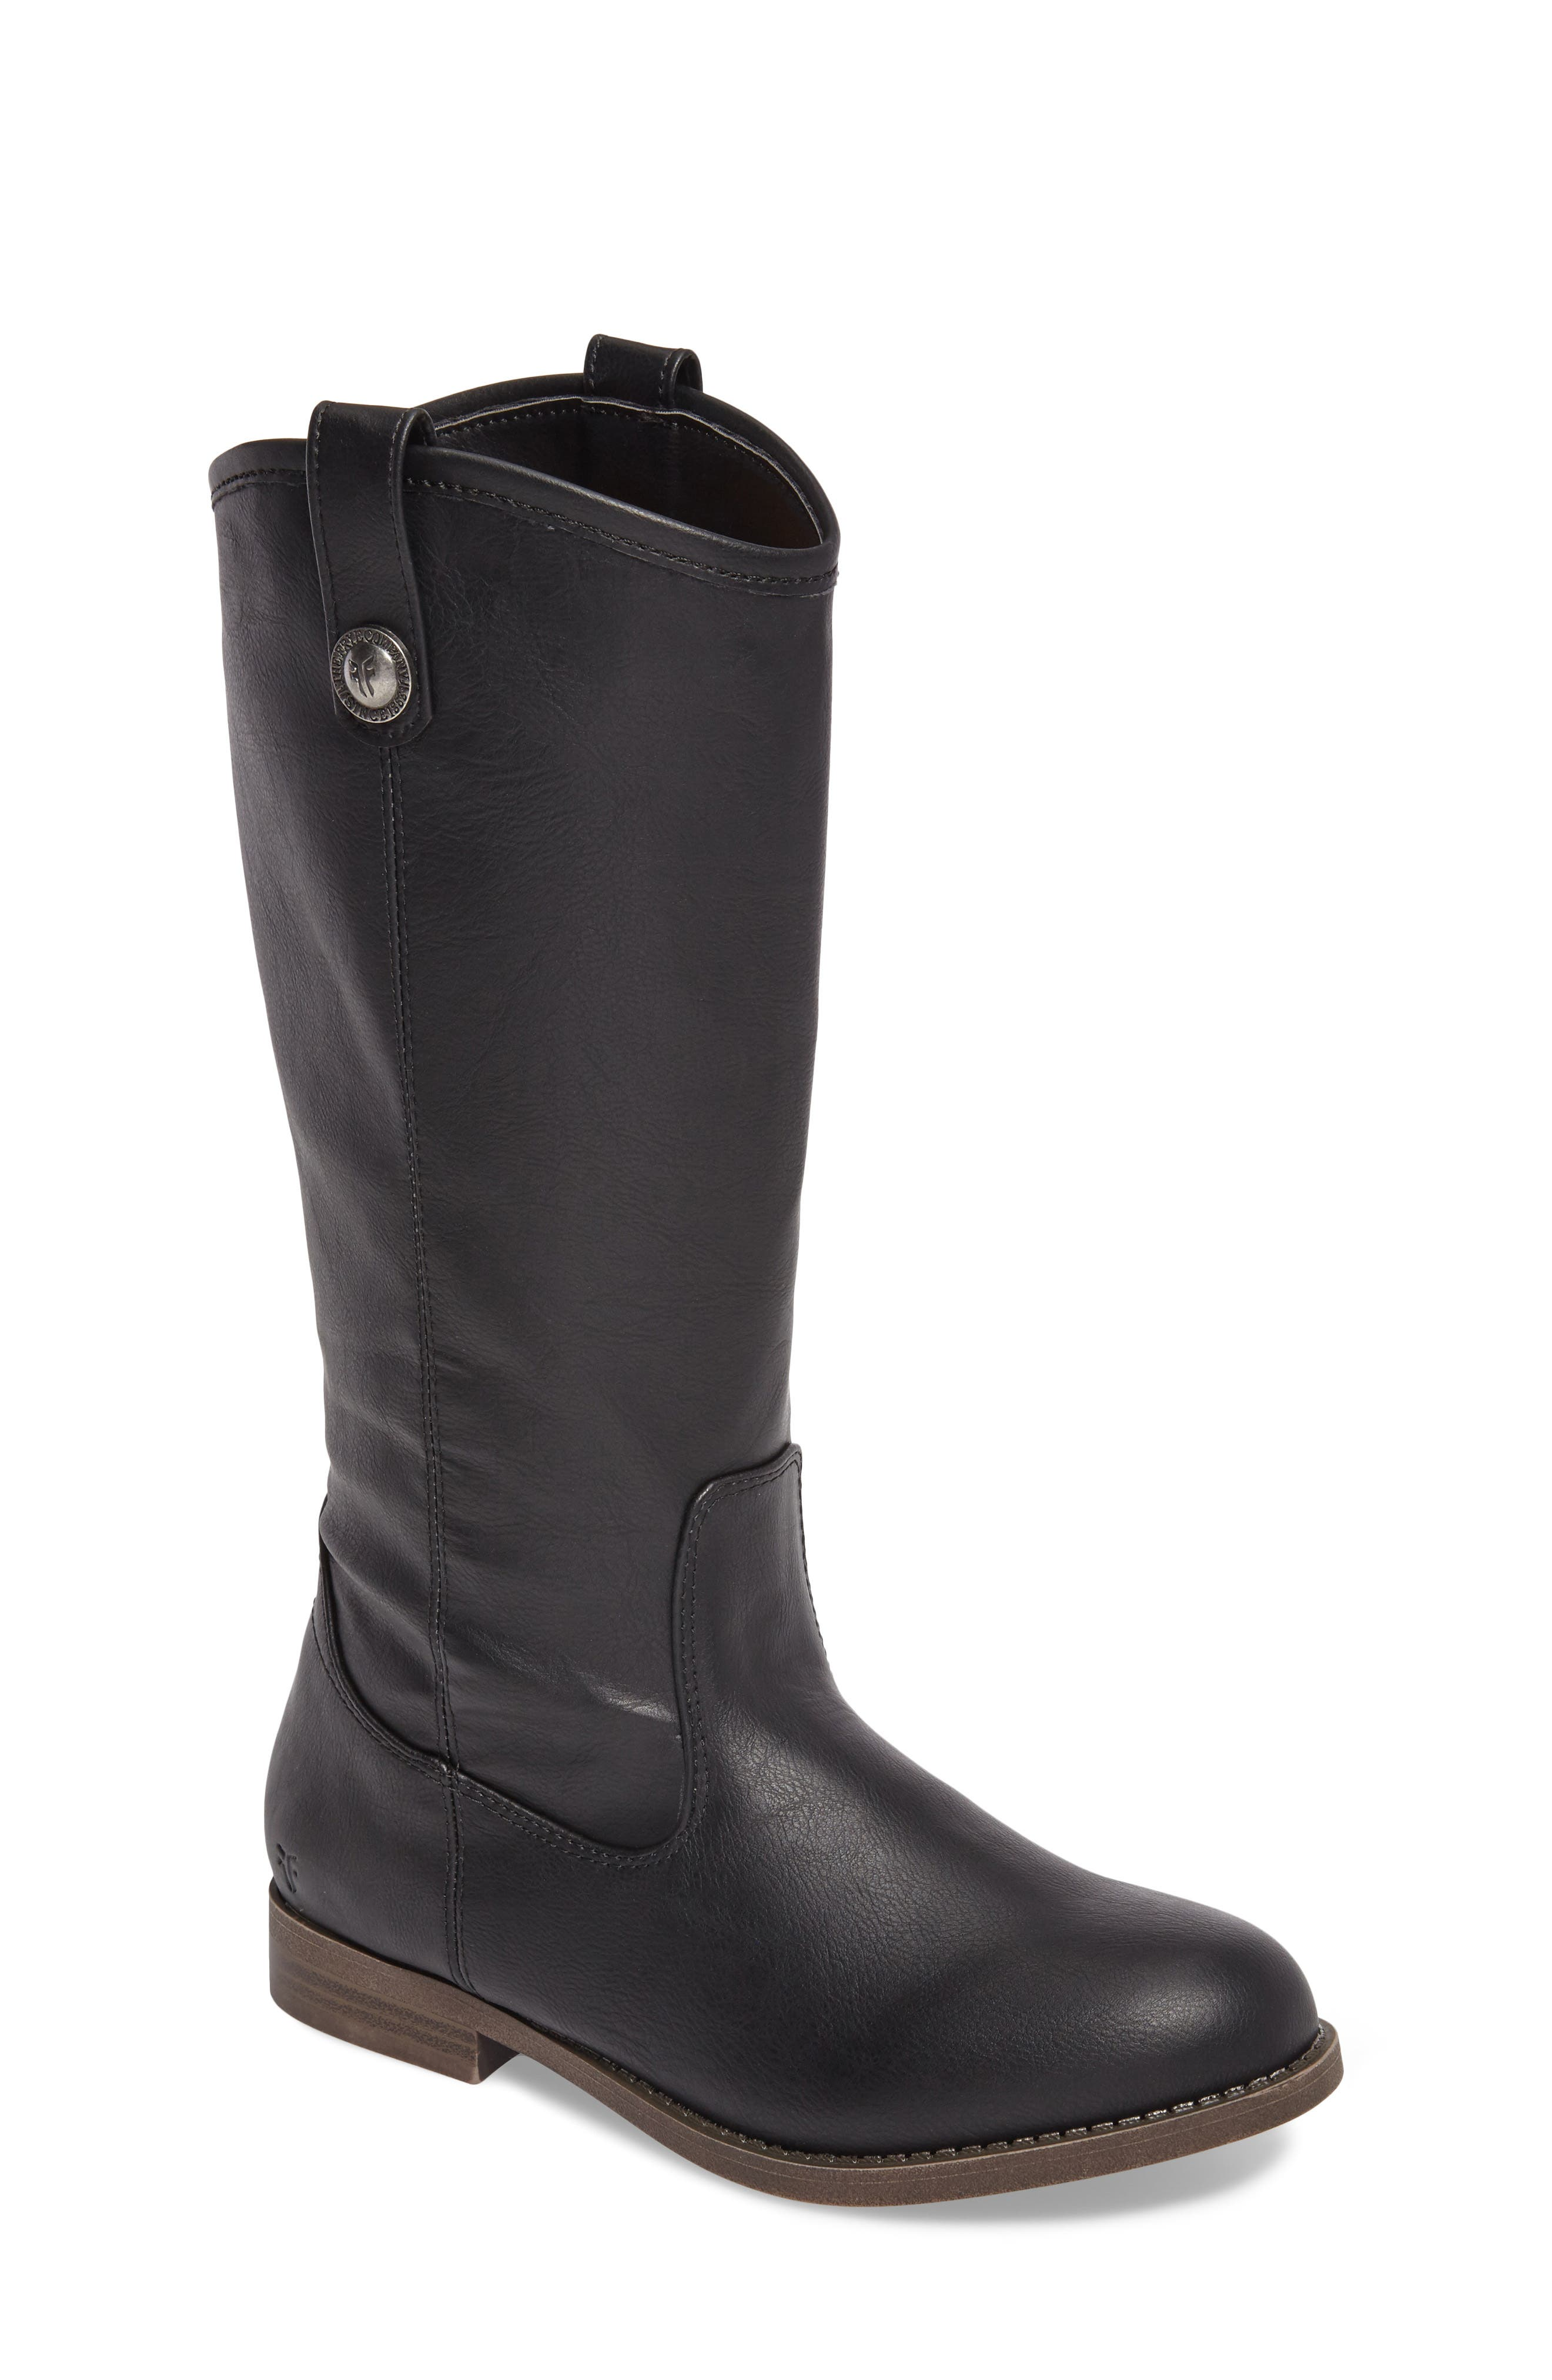 FRYE Melissa Button Riding Boot, Main, color, 001